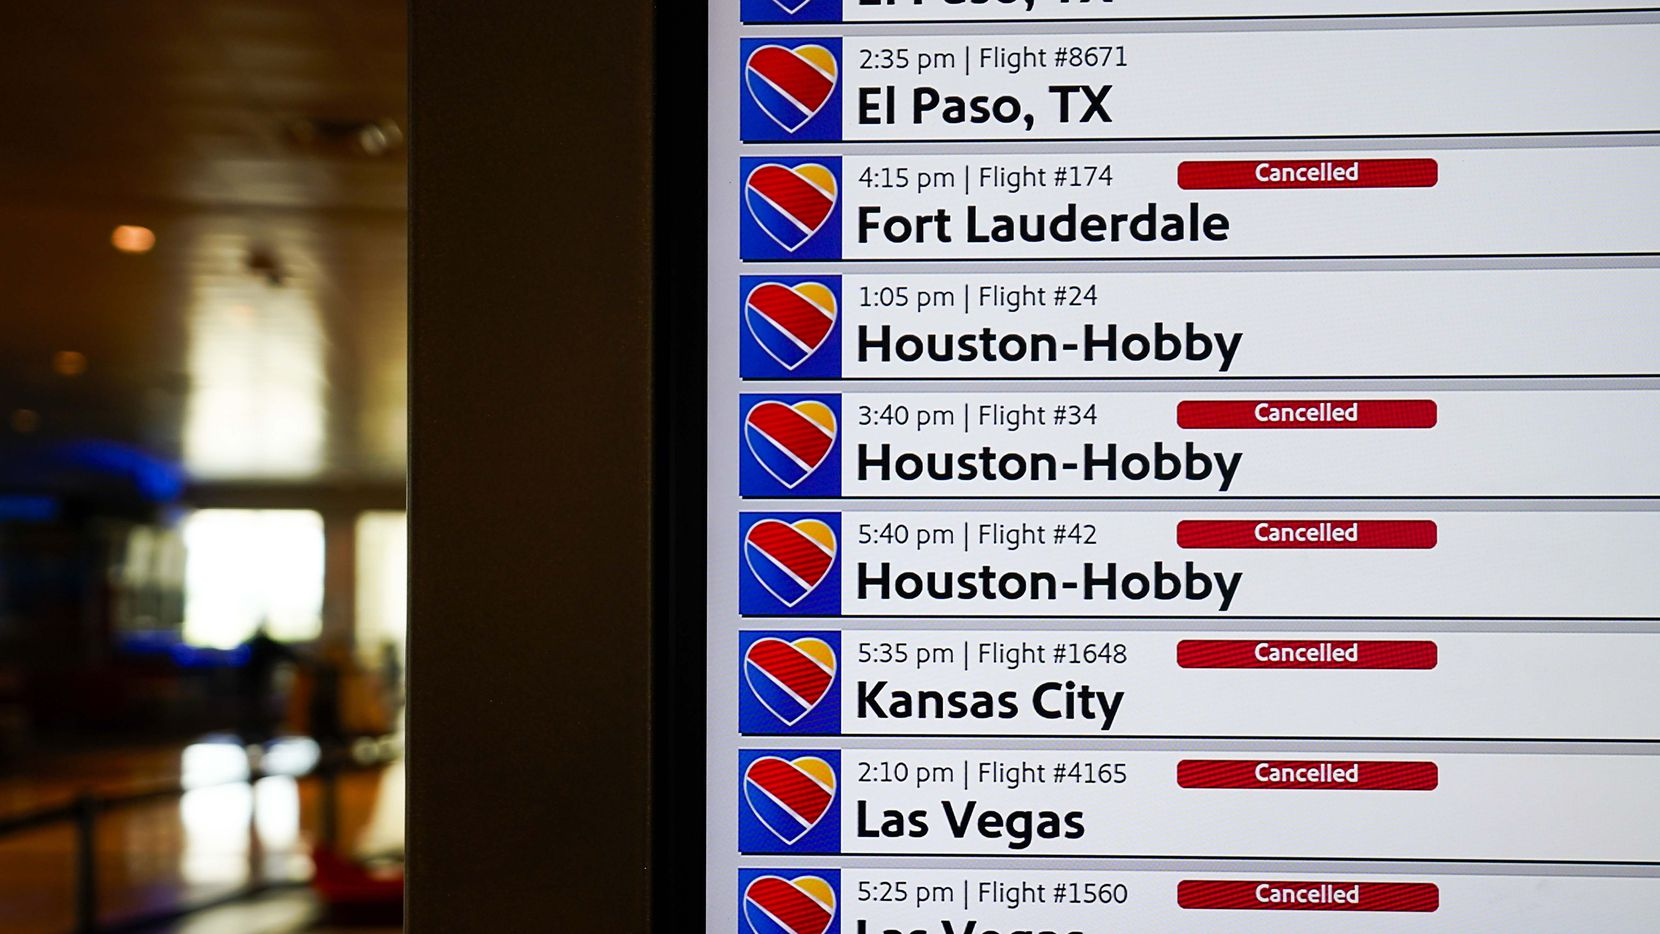 Flight status boards show cancelled Southwest Airlines flights at Dallas Love Field on Tuesday, April 14, 2020, in Dallas.  (Smiley N. Pool/The Dallas Morning News)